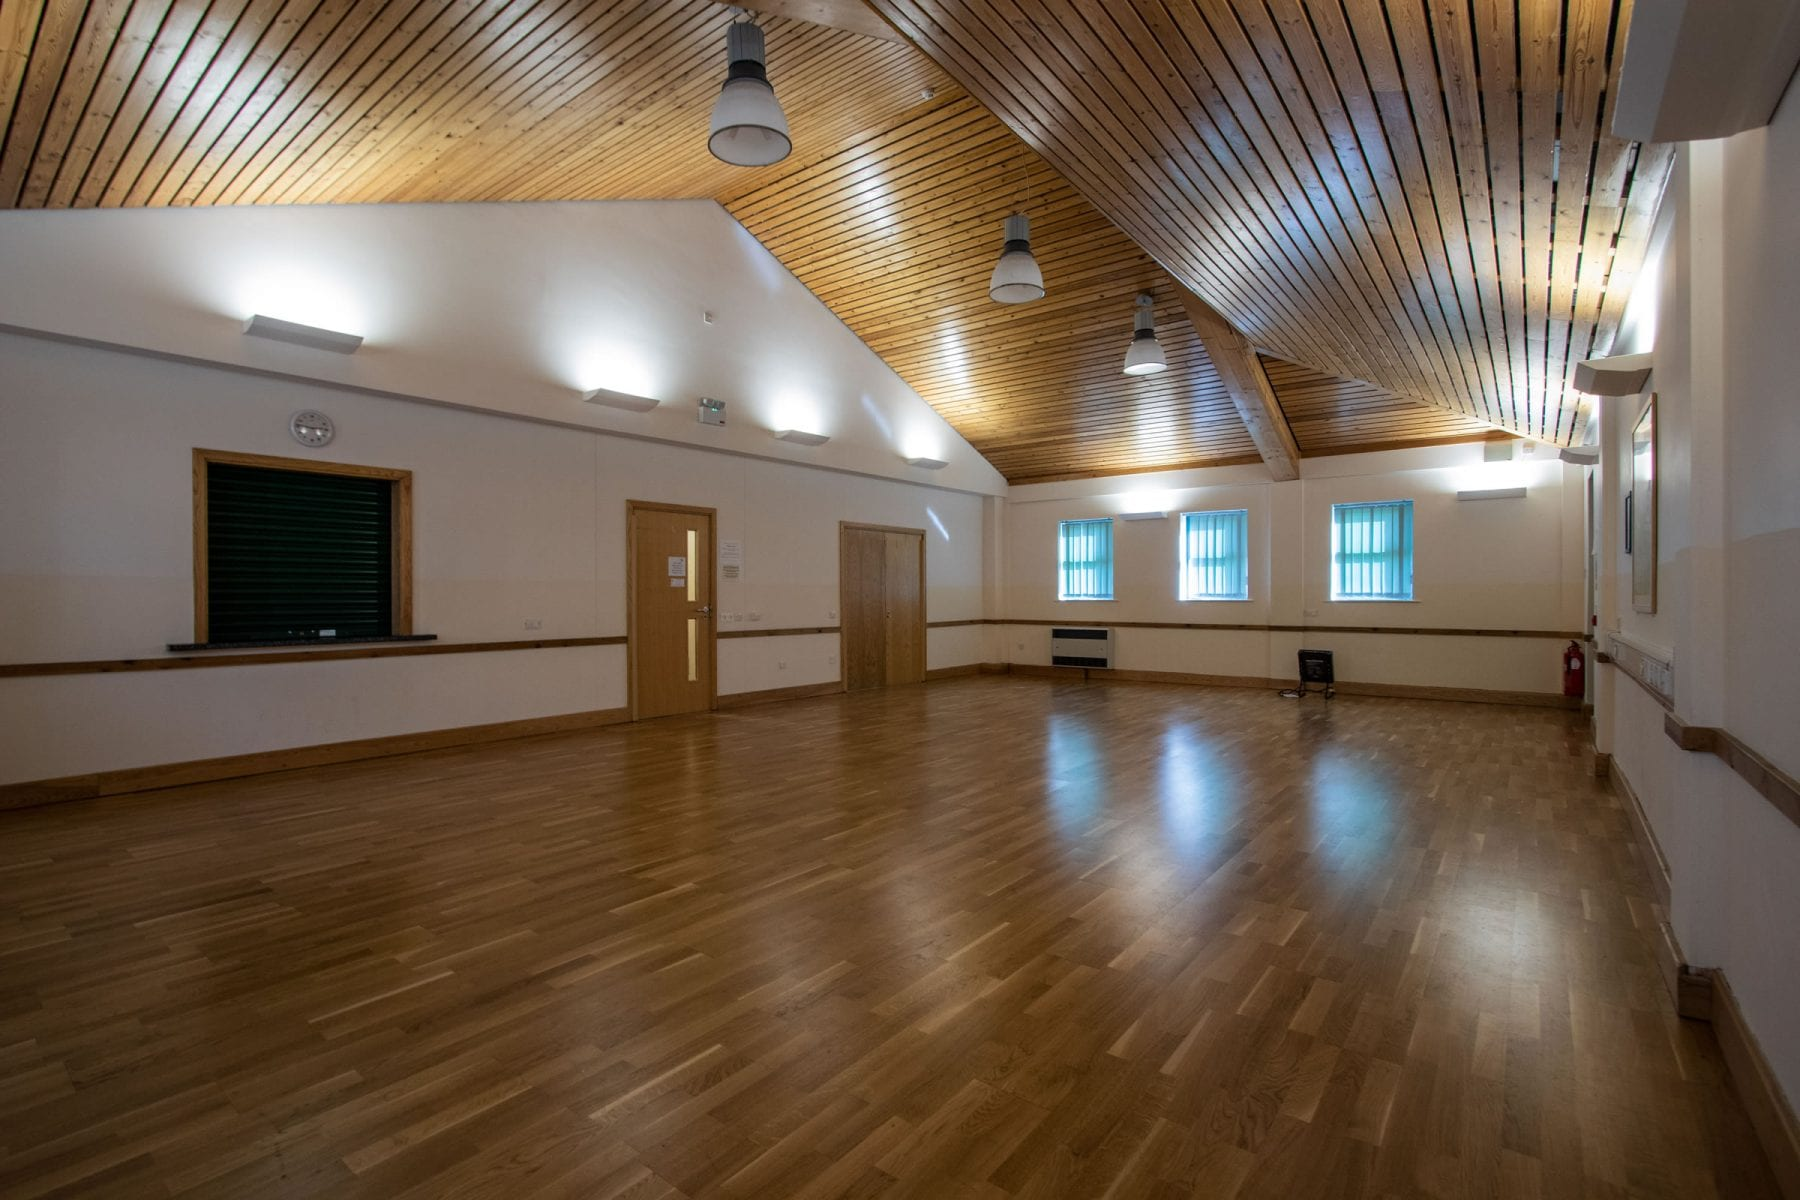 Petuaria Community Centre Large Hall for hire in Brough East Yorkshire